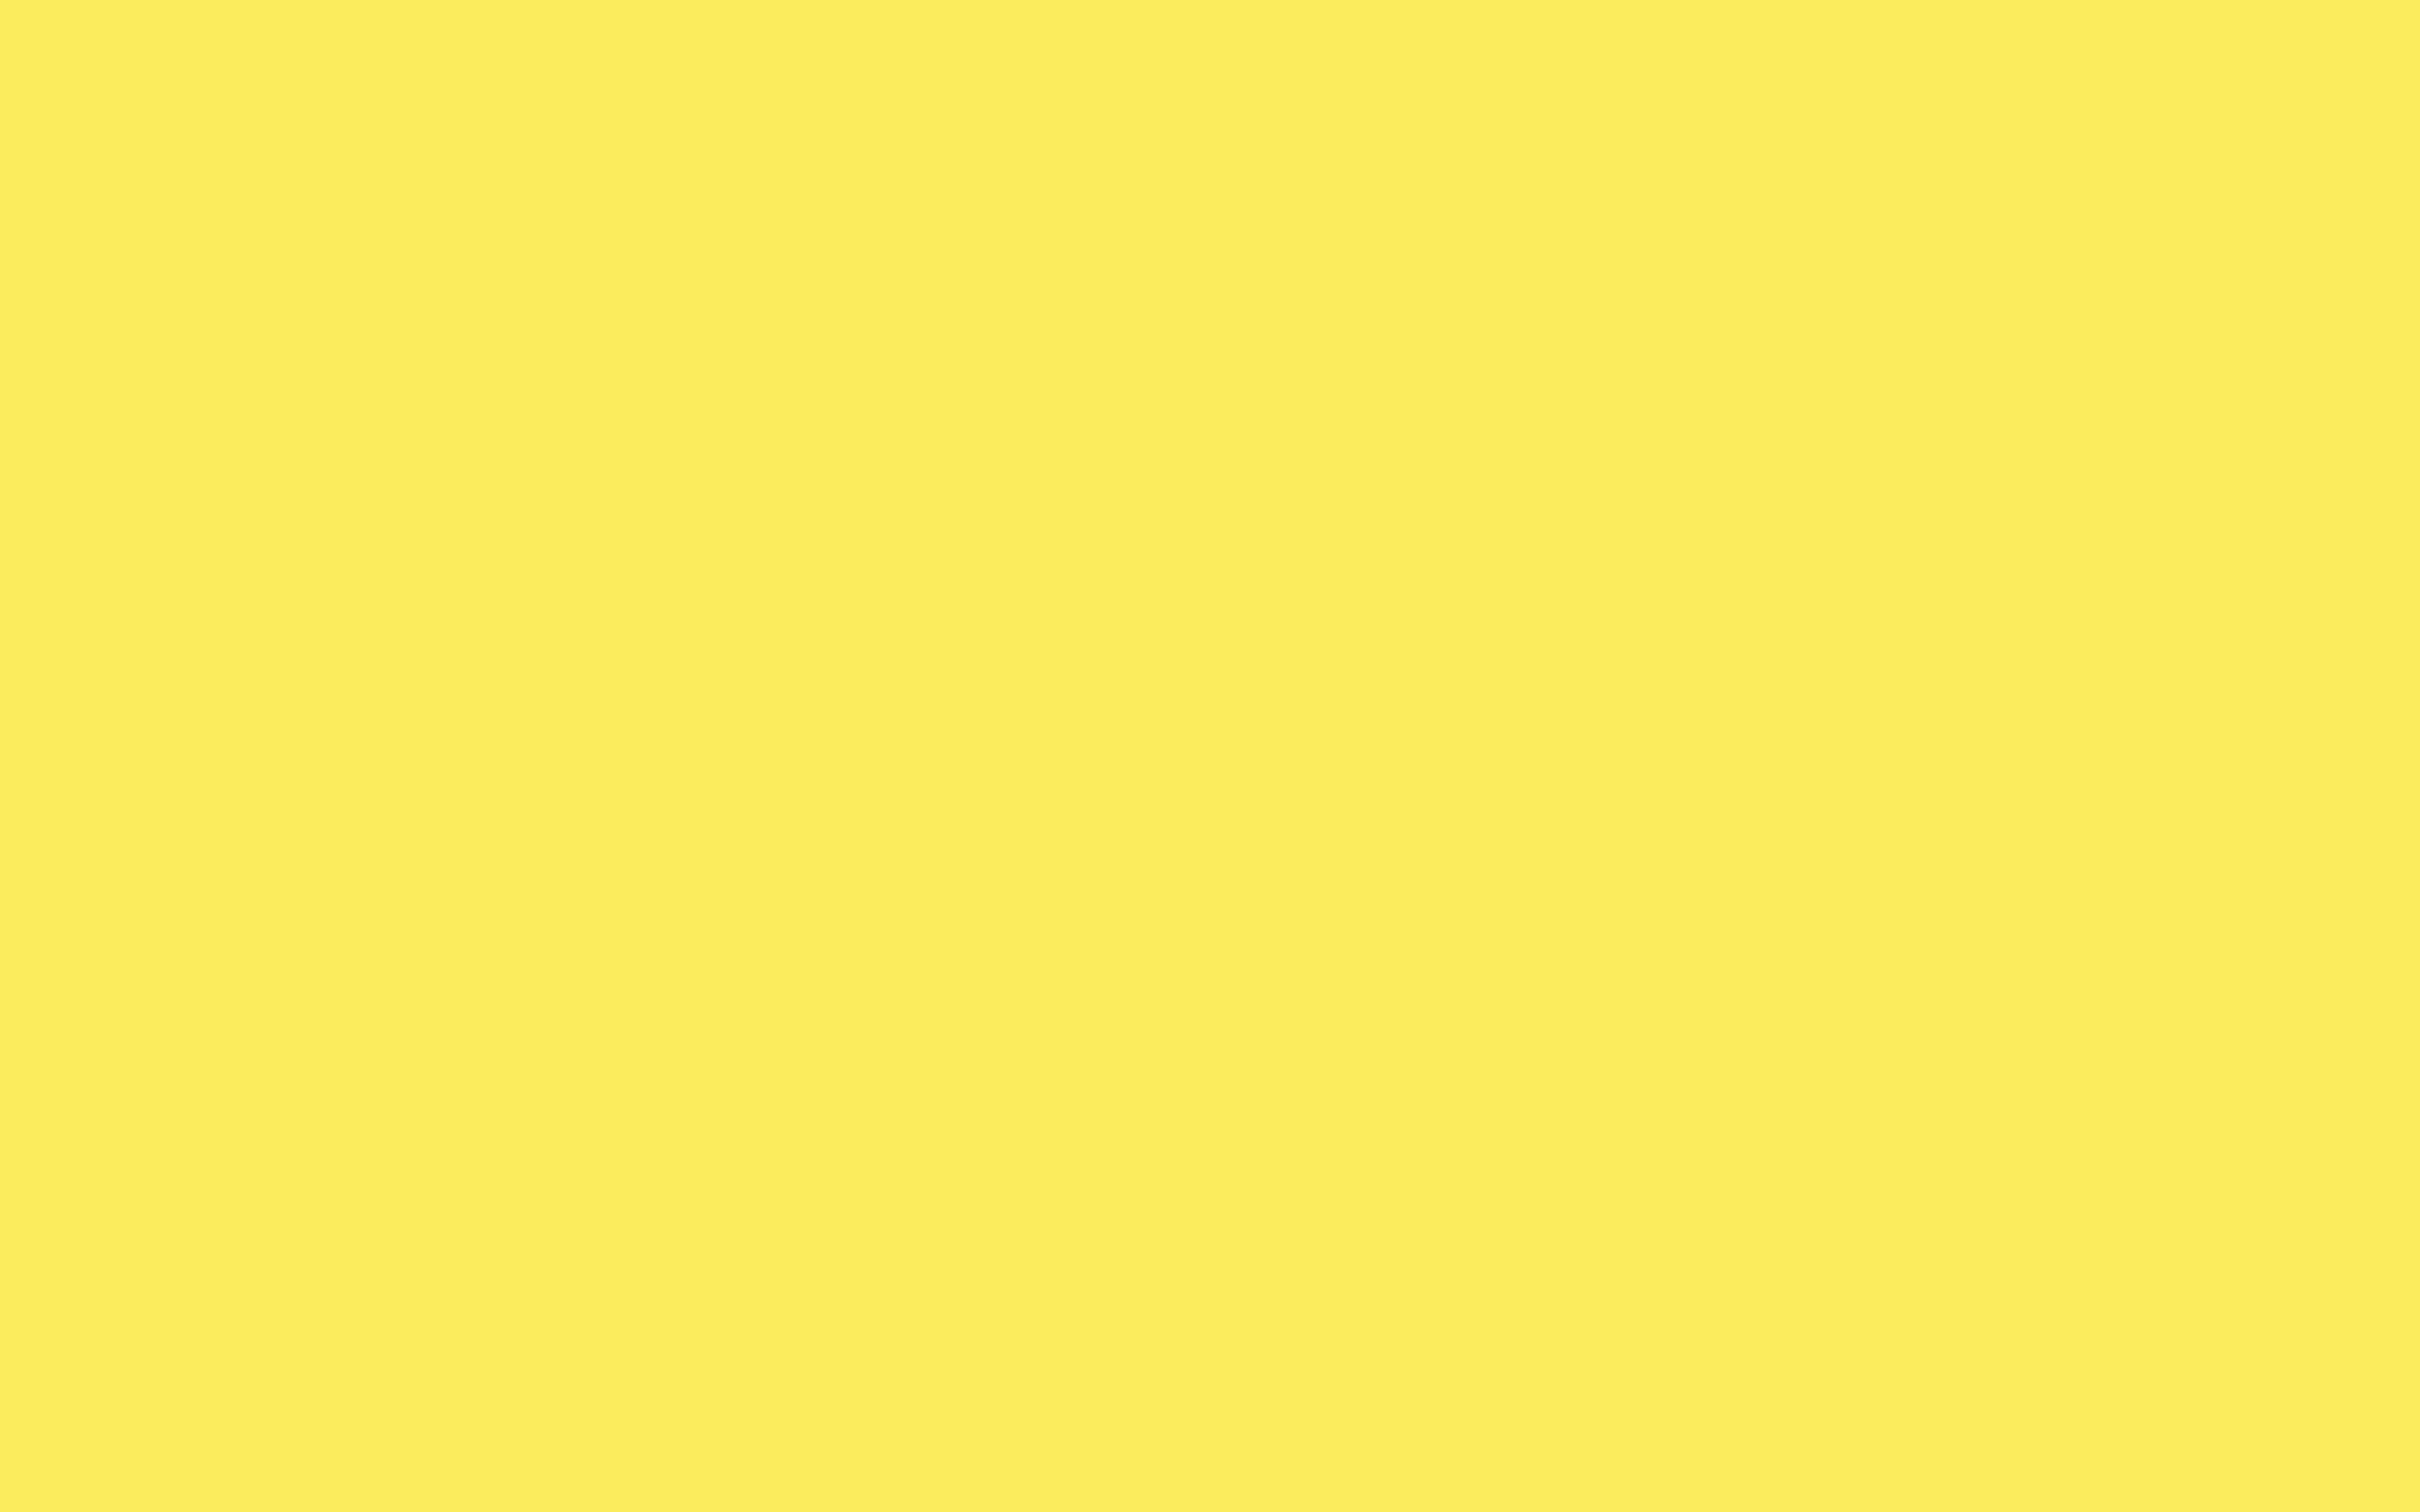 2880x1800 Maize Solid Color Background